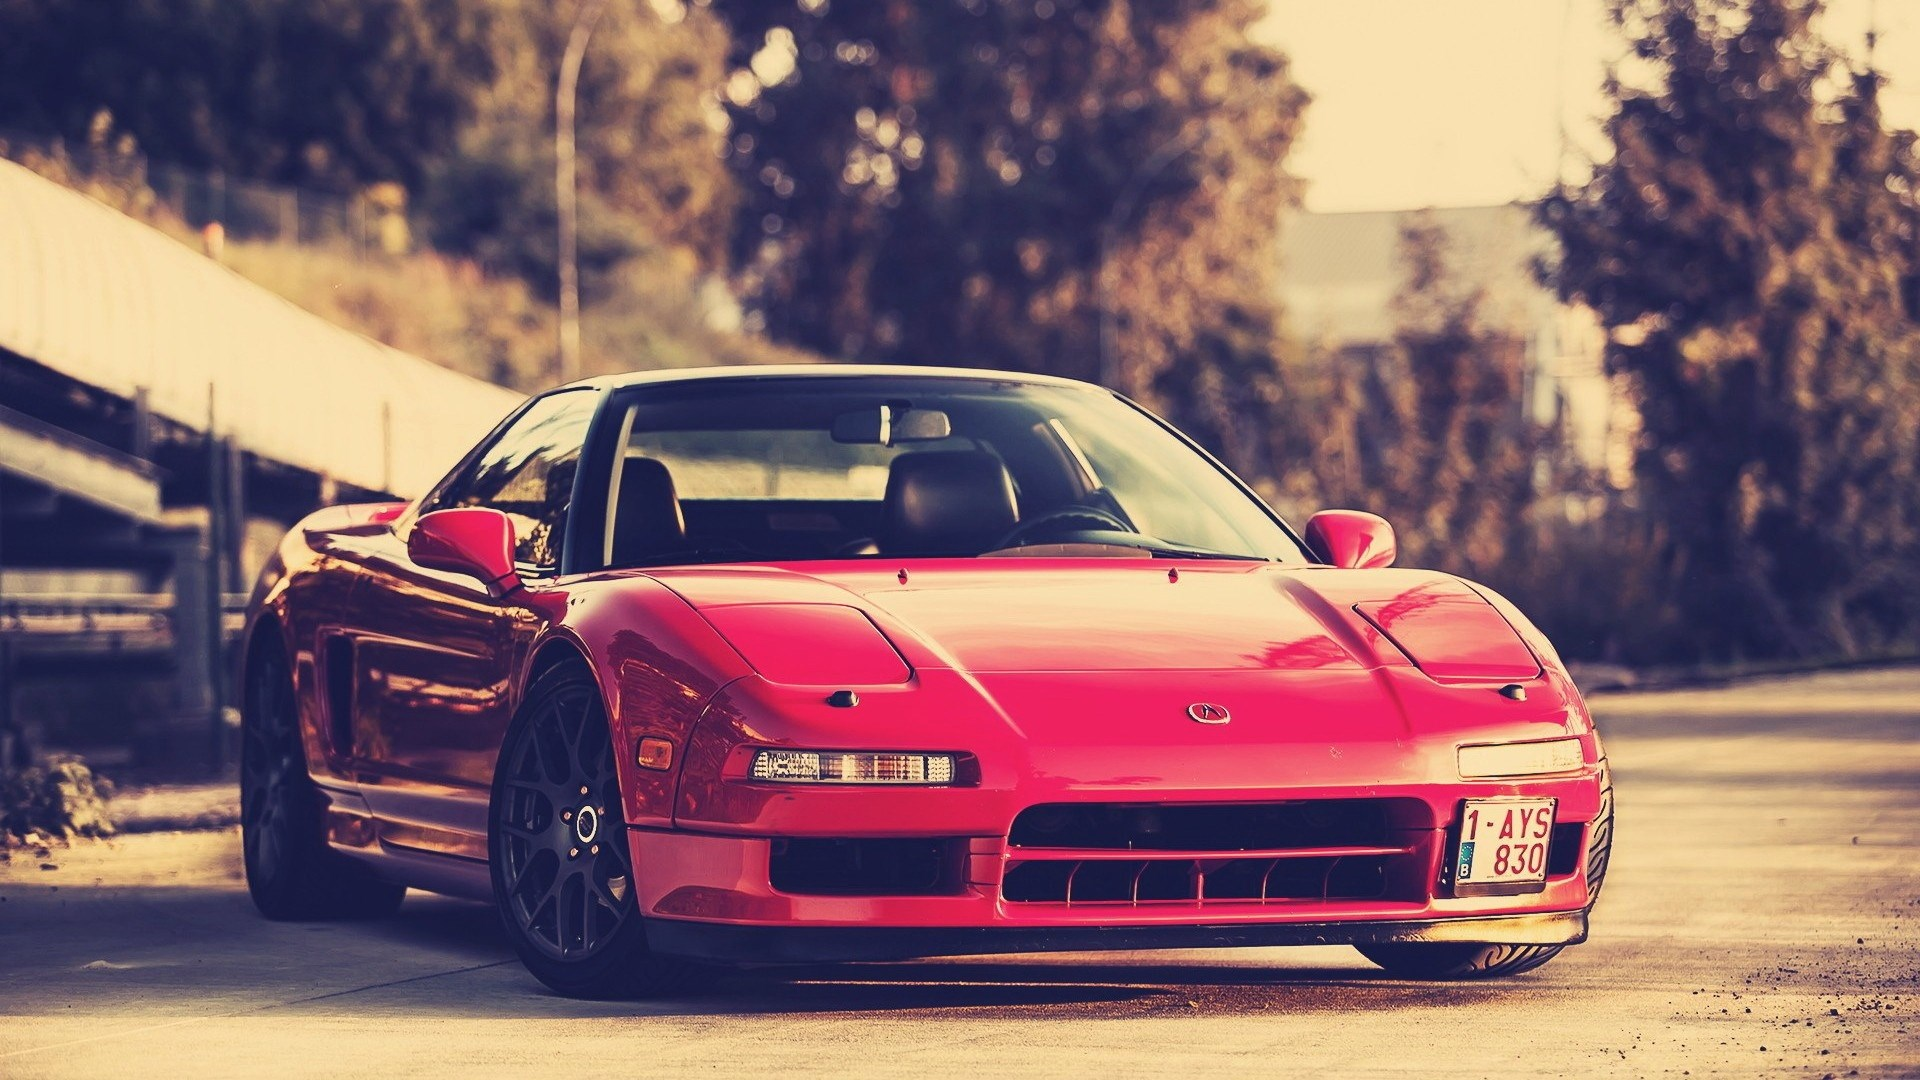 acura-nsx-1920x1080-download-wallpaper-wpc9002037